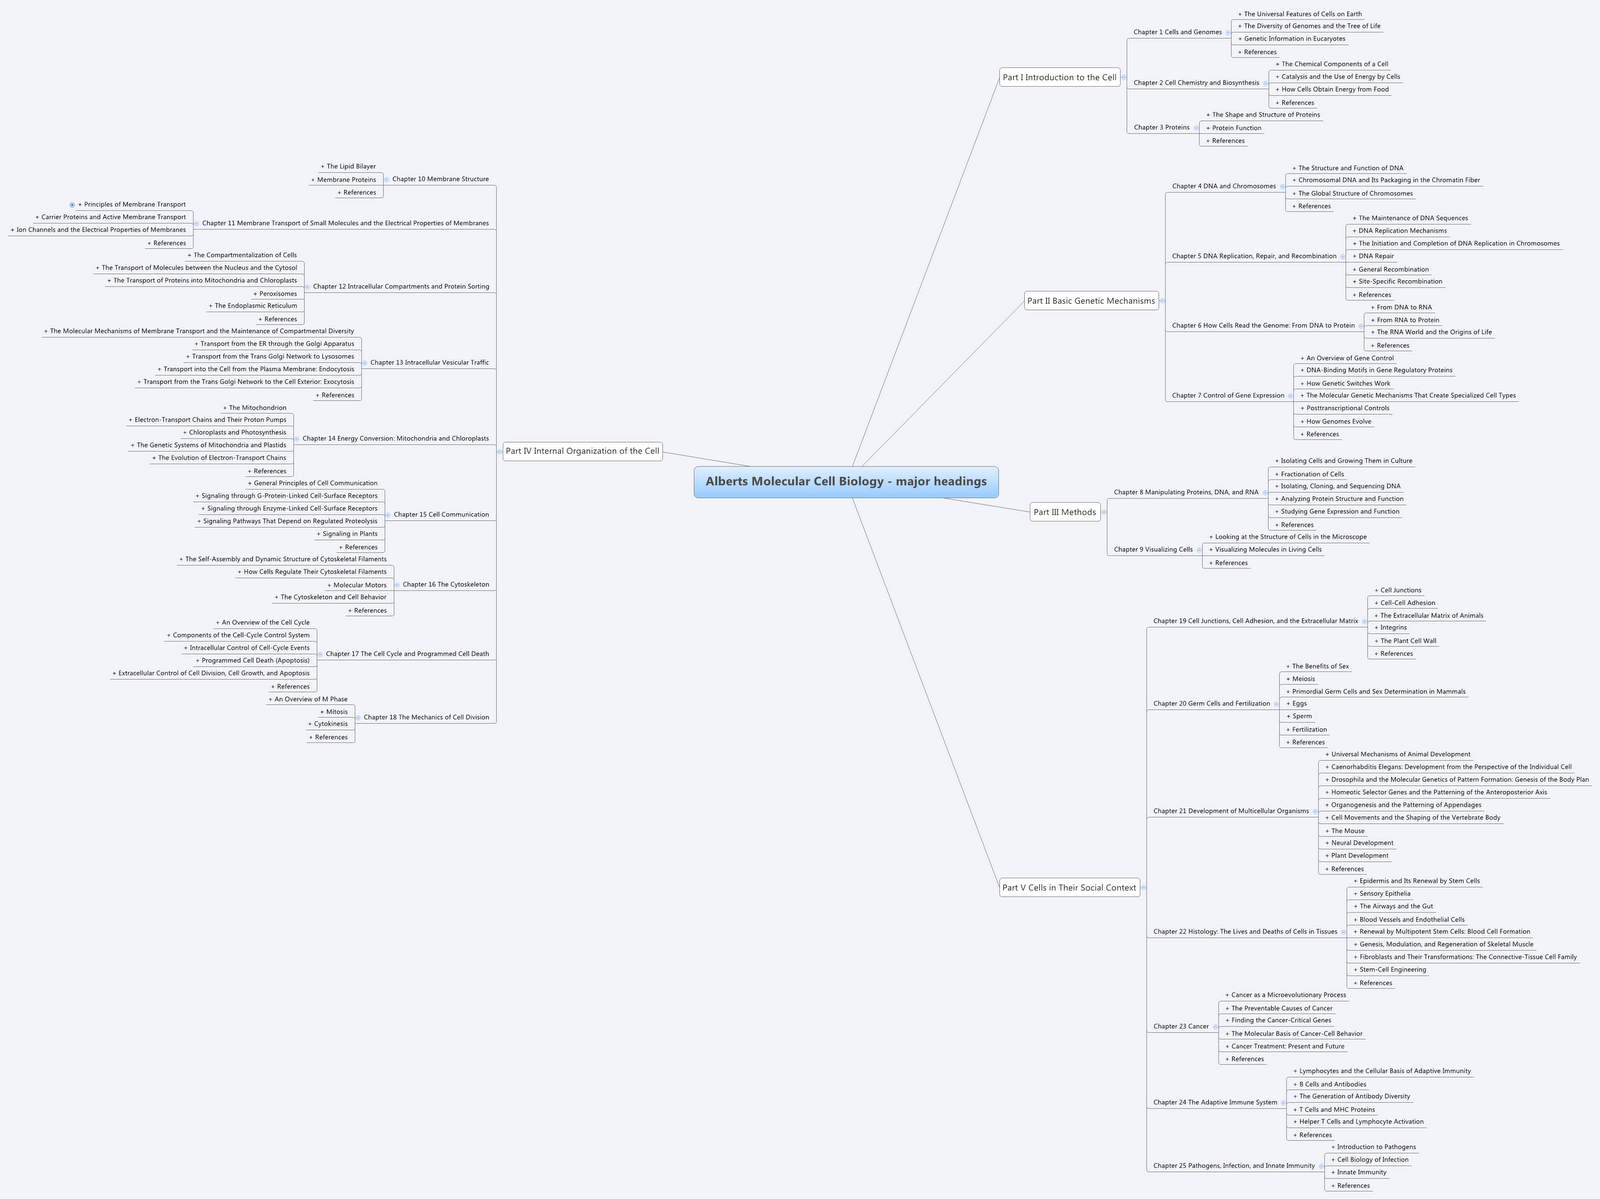 Lowkeytec convert structured text into mind maps in seconds open xmind and paste it at first you should get this sligthly overwhelming mindmap pooptronica Choice Image